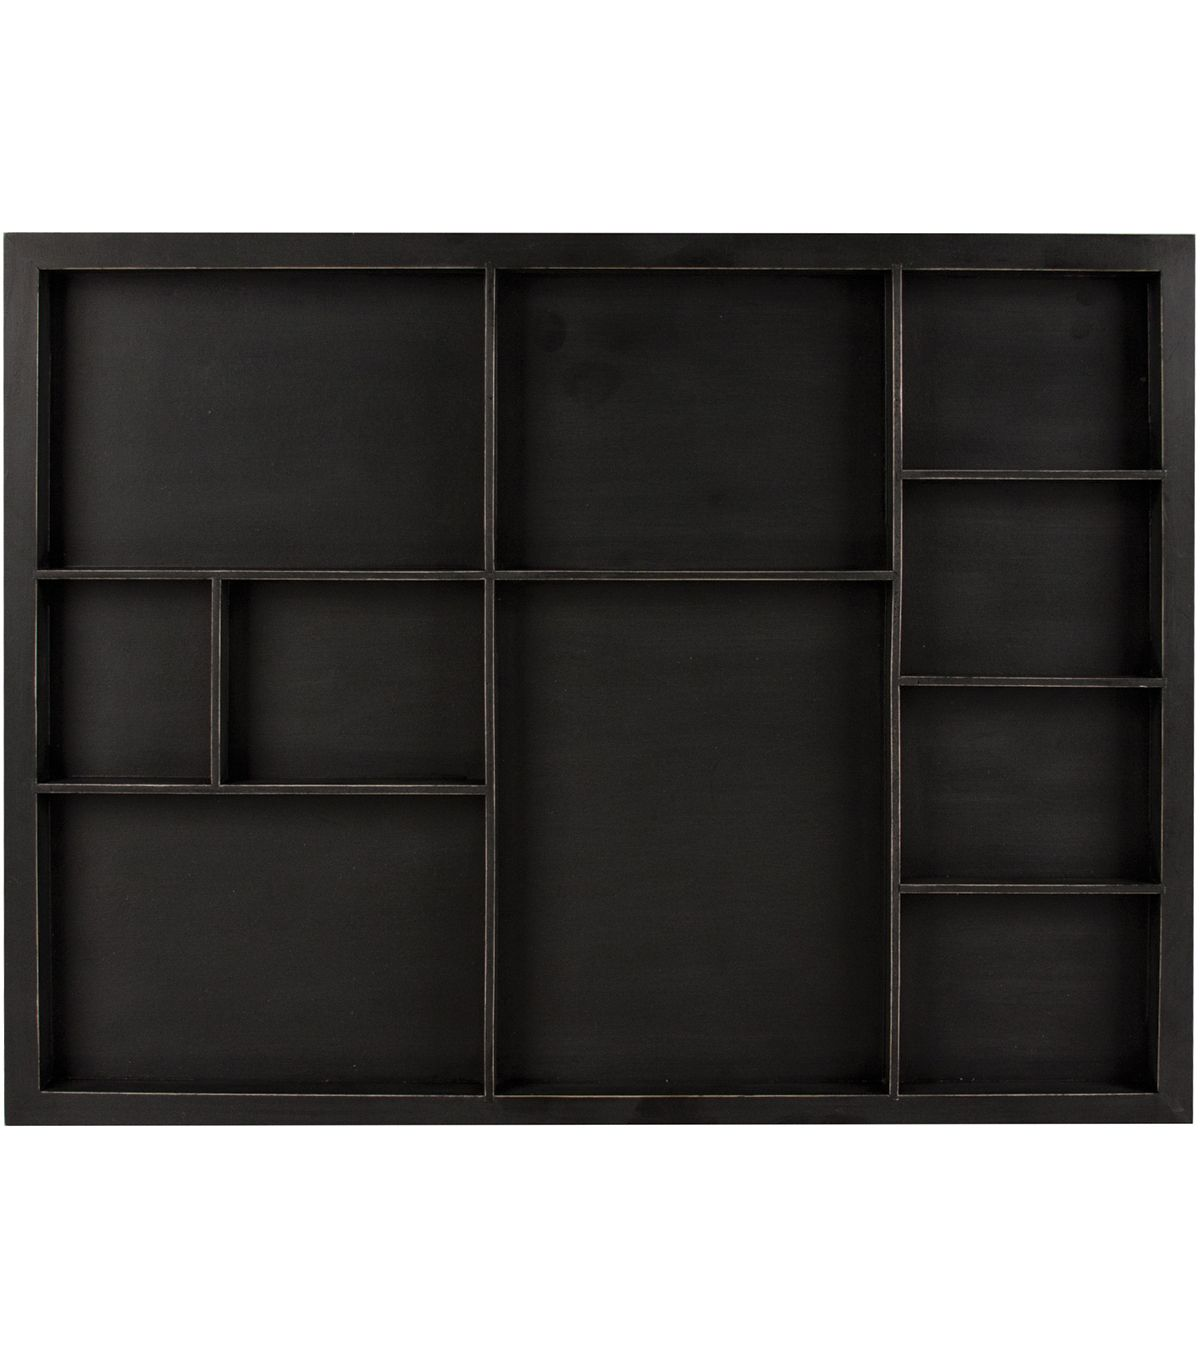 """7 Gypsies Shadowbox Tray 12""""X16""""-Black..... Soooo much potential for this!! Can't wait to get on it!! Just gotta figure out where to start! I know my walls are about to be filled w these..... Haha!"""